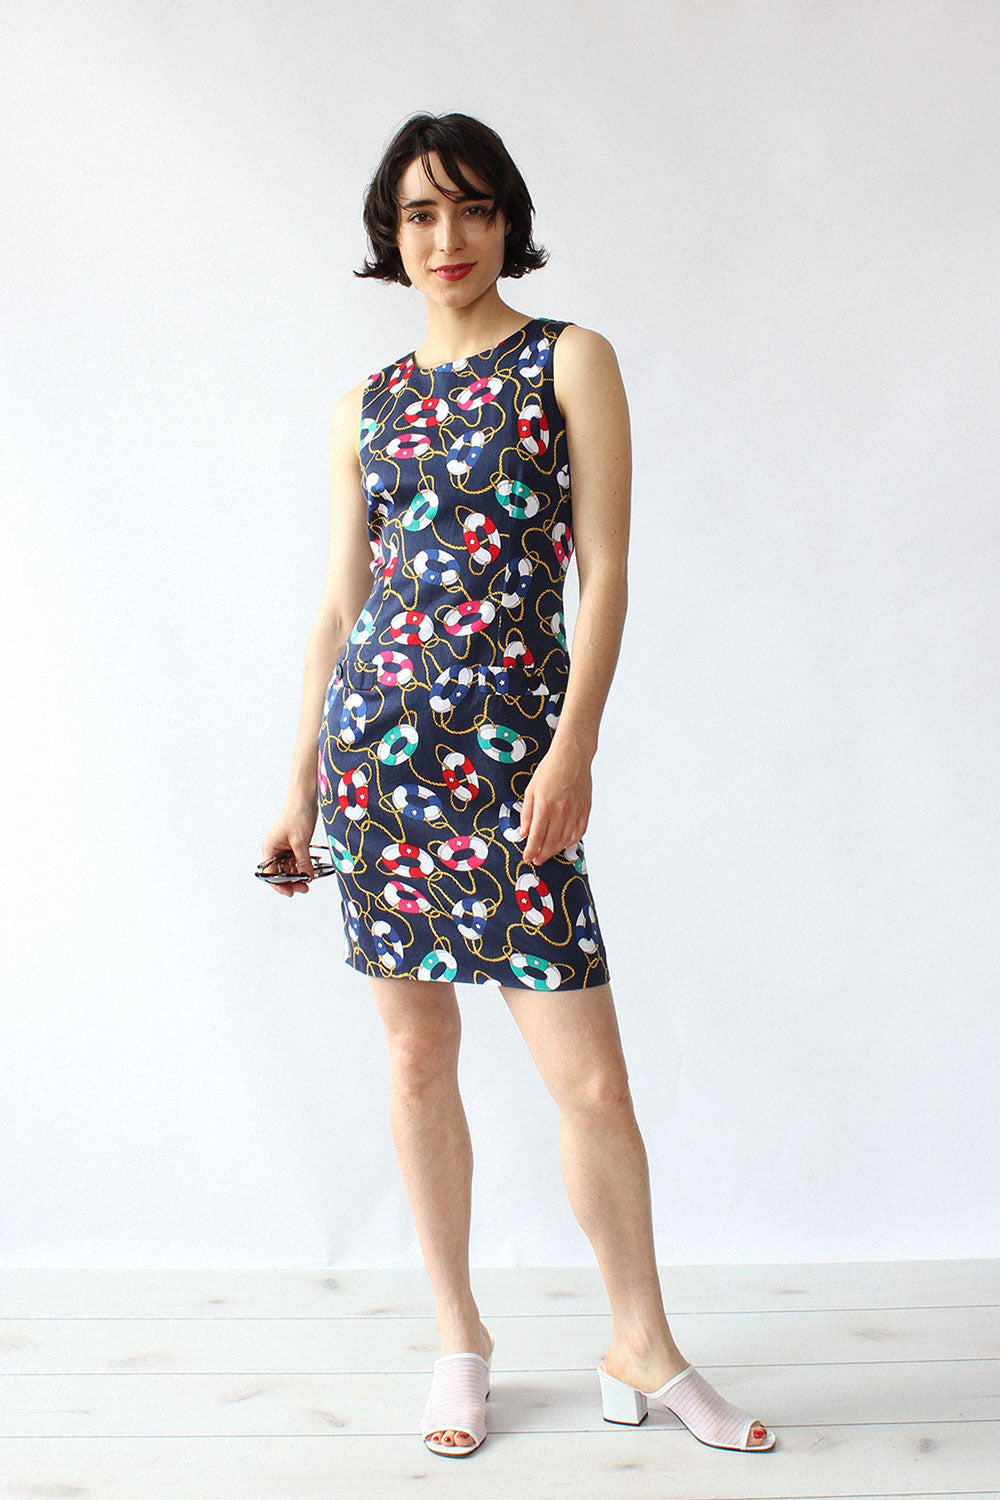 Life Saver Novelty Print Dress S/M